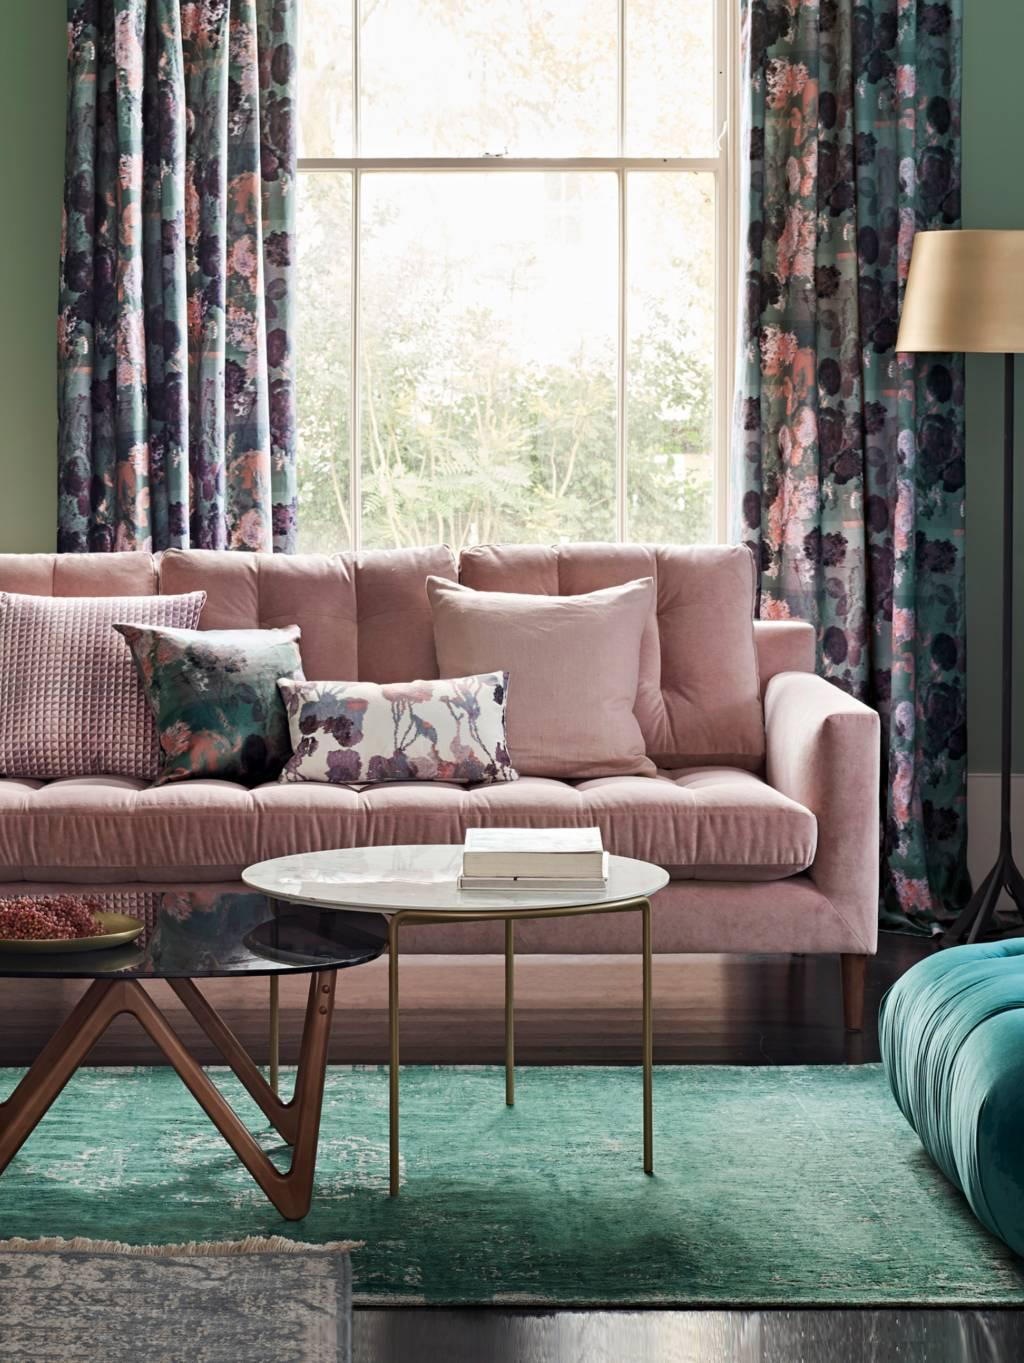 Pink and green living room inspiration| Today we're talking inspiration for adding green to your living room. Green is a really versatile colour to decorate your home with. But, which colours and tones work well? What kind of accessories work with green? This post gives you ideas for pulling together an elegant green colour palette and pieces for your home. Read more: kittyandb.com #greenlivingroom #interiordecoratinginspiration #greenaesthetic #pinksofa #greenwalls #Pinkandgreen